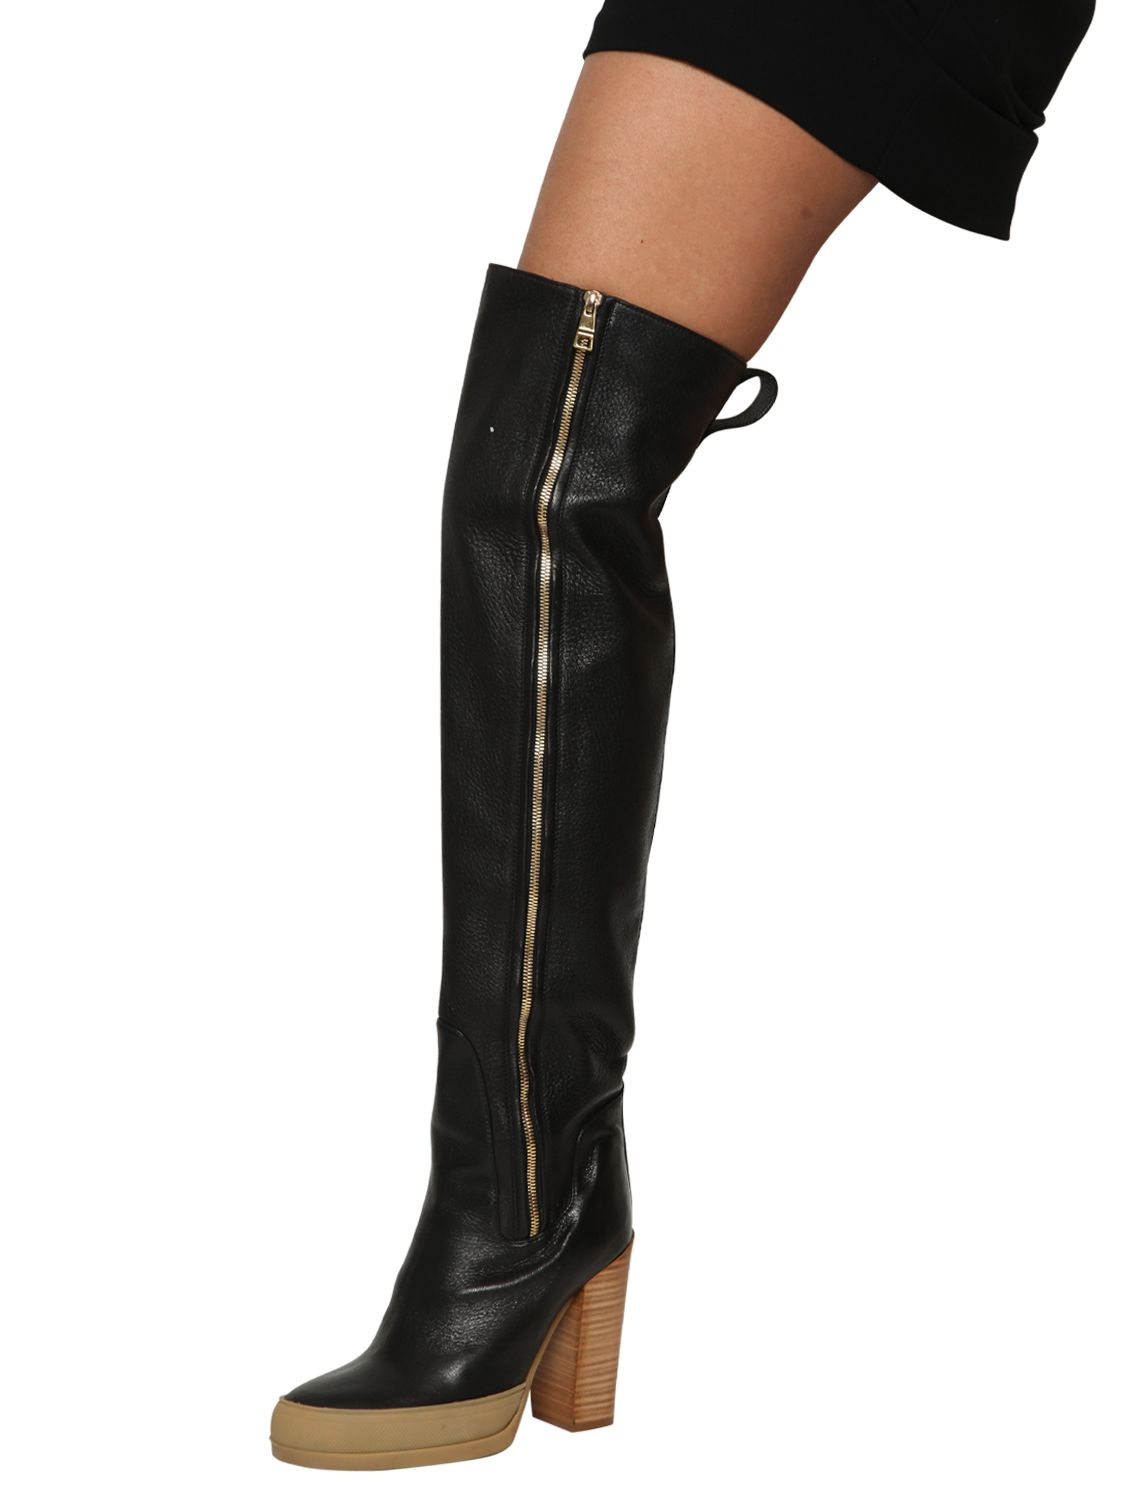 knee-high boots - Black Chlo Cheap Lowest Price eIdTIL